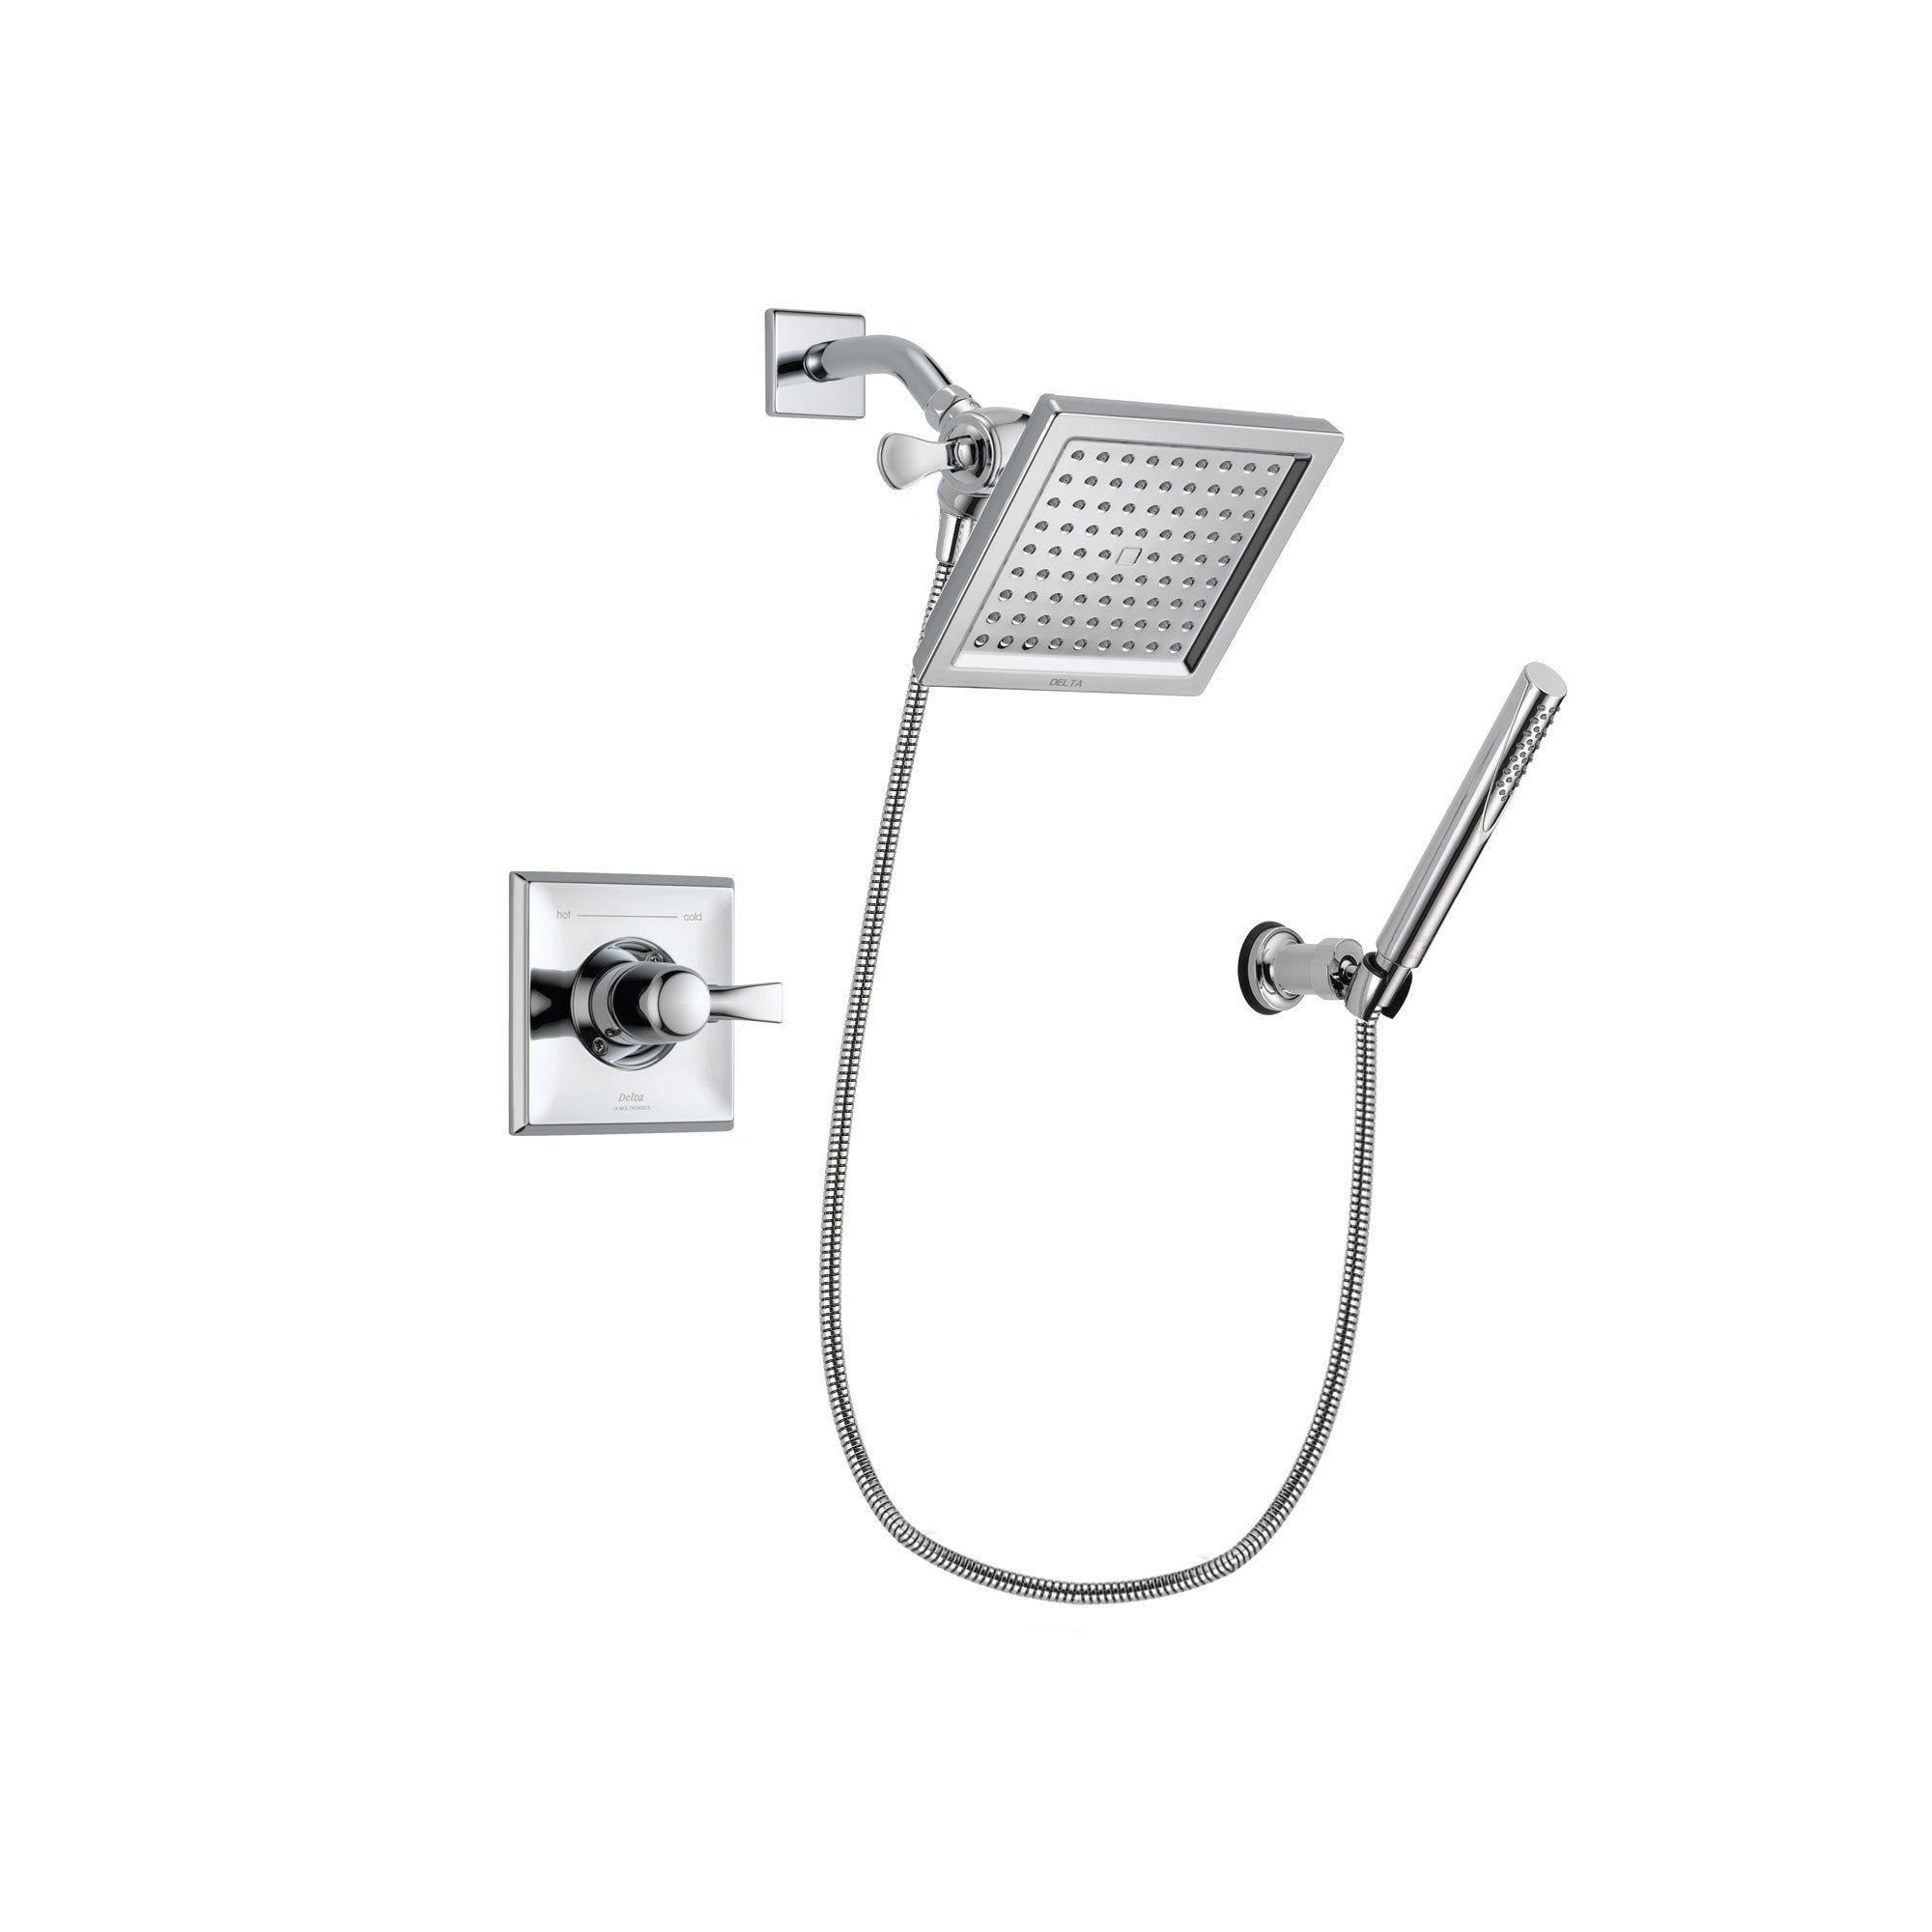 Delta Dryden Chrome Shower Faucet System with Shower Head & Hand Shower DSP0072V